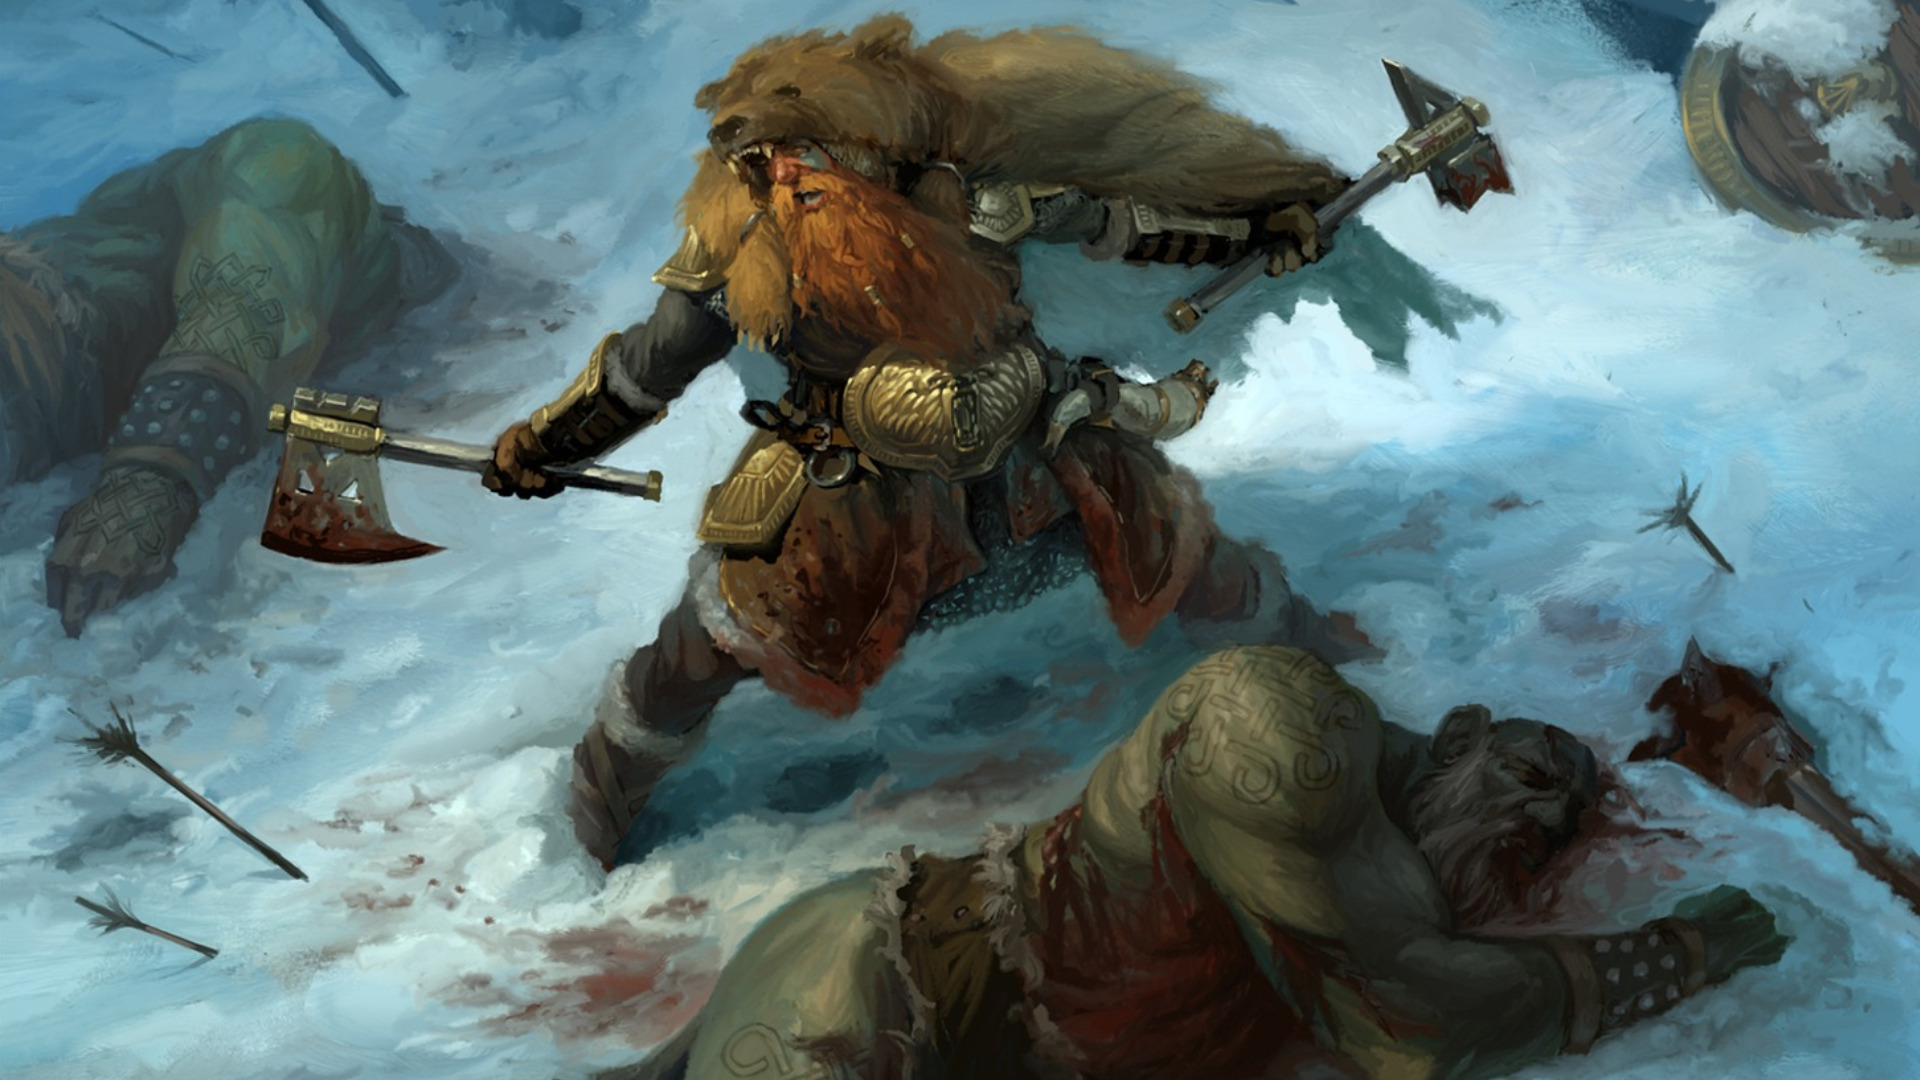 Dwarf Wallpaper